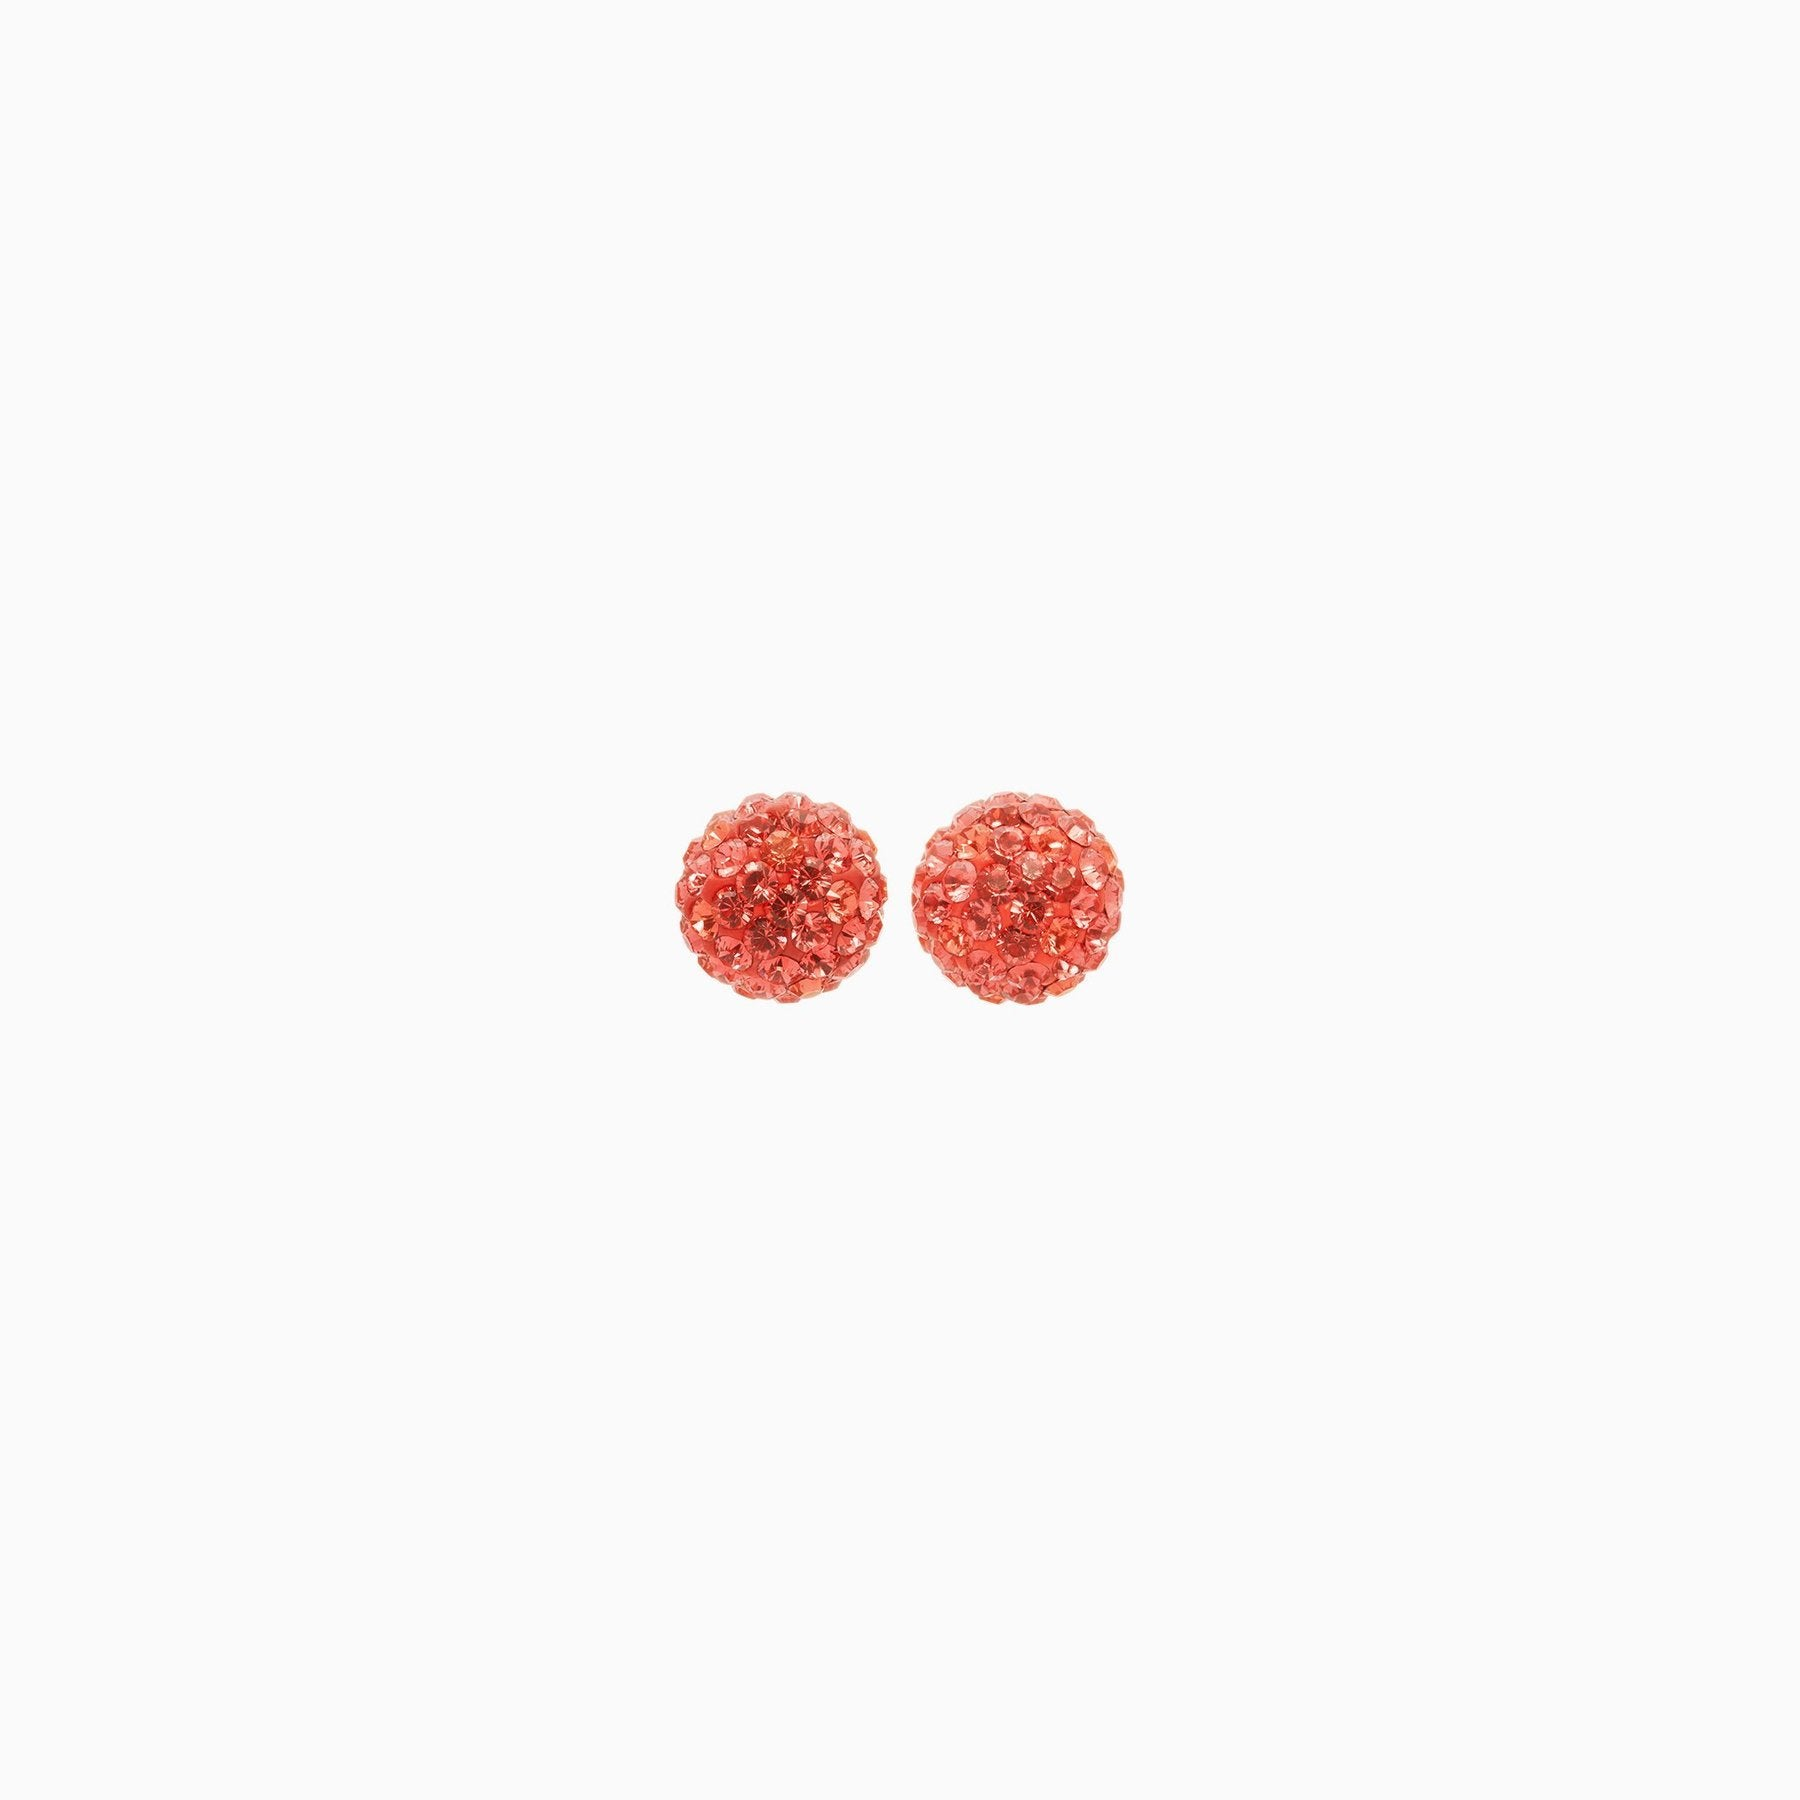 H&B Sparkle Ball™ Stud Earrings - 8mm Coral